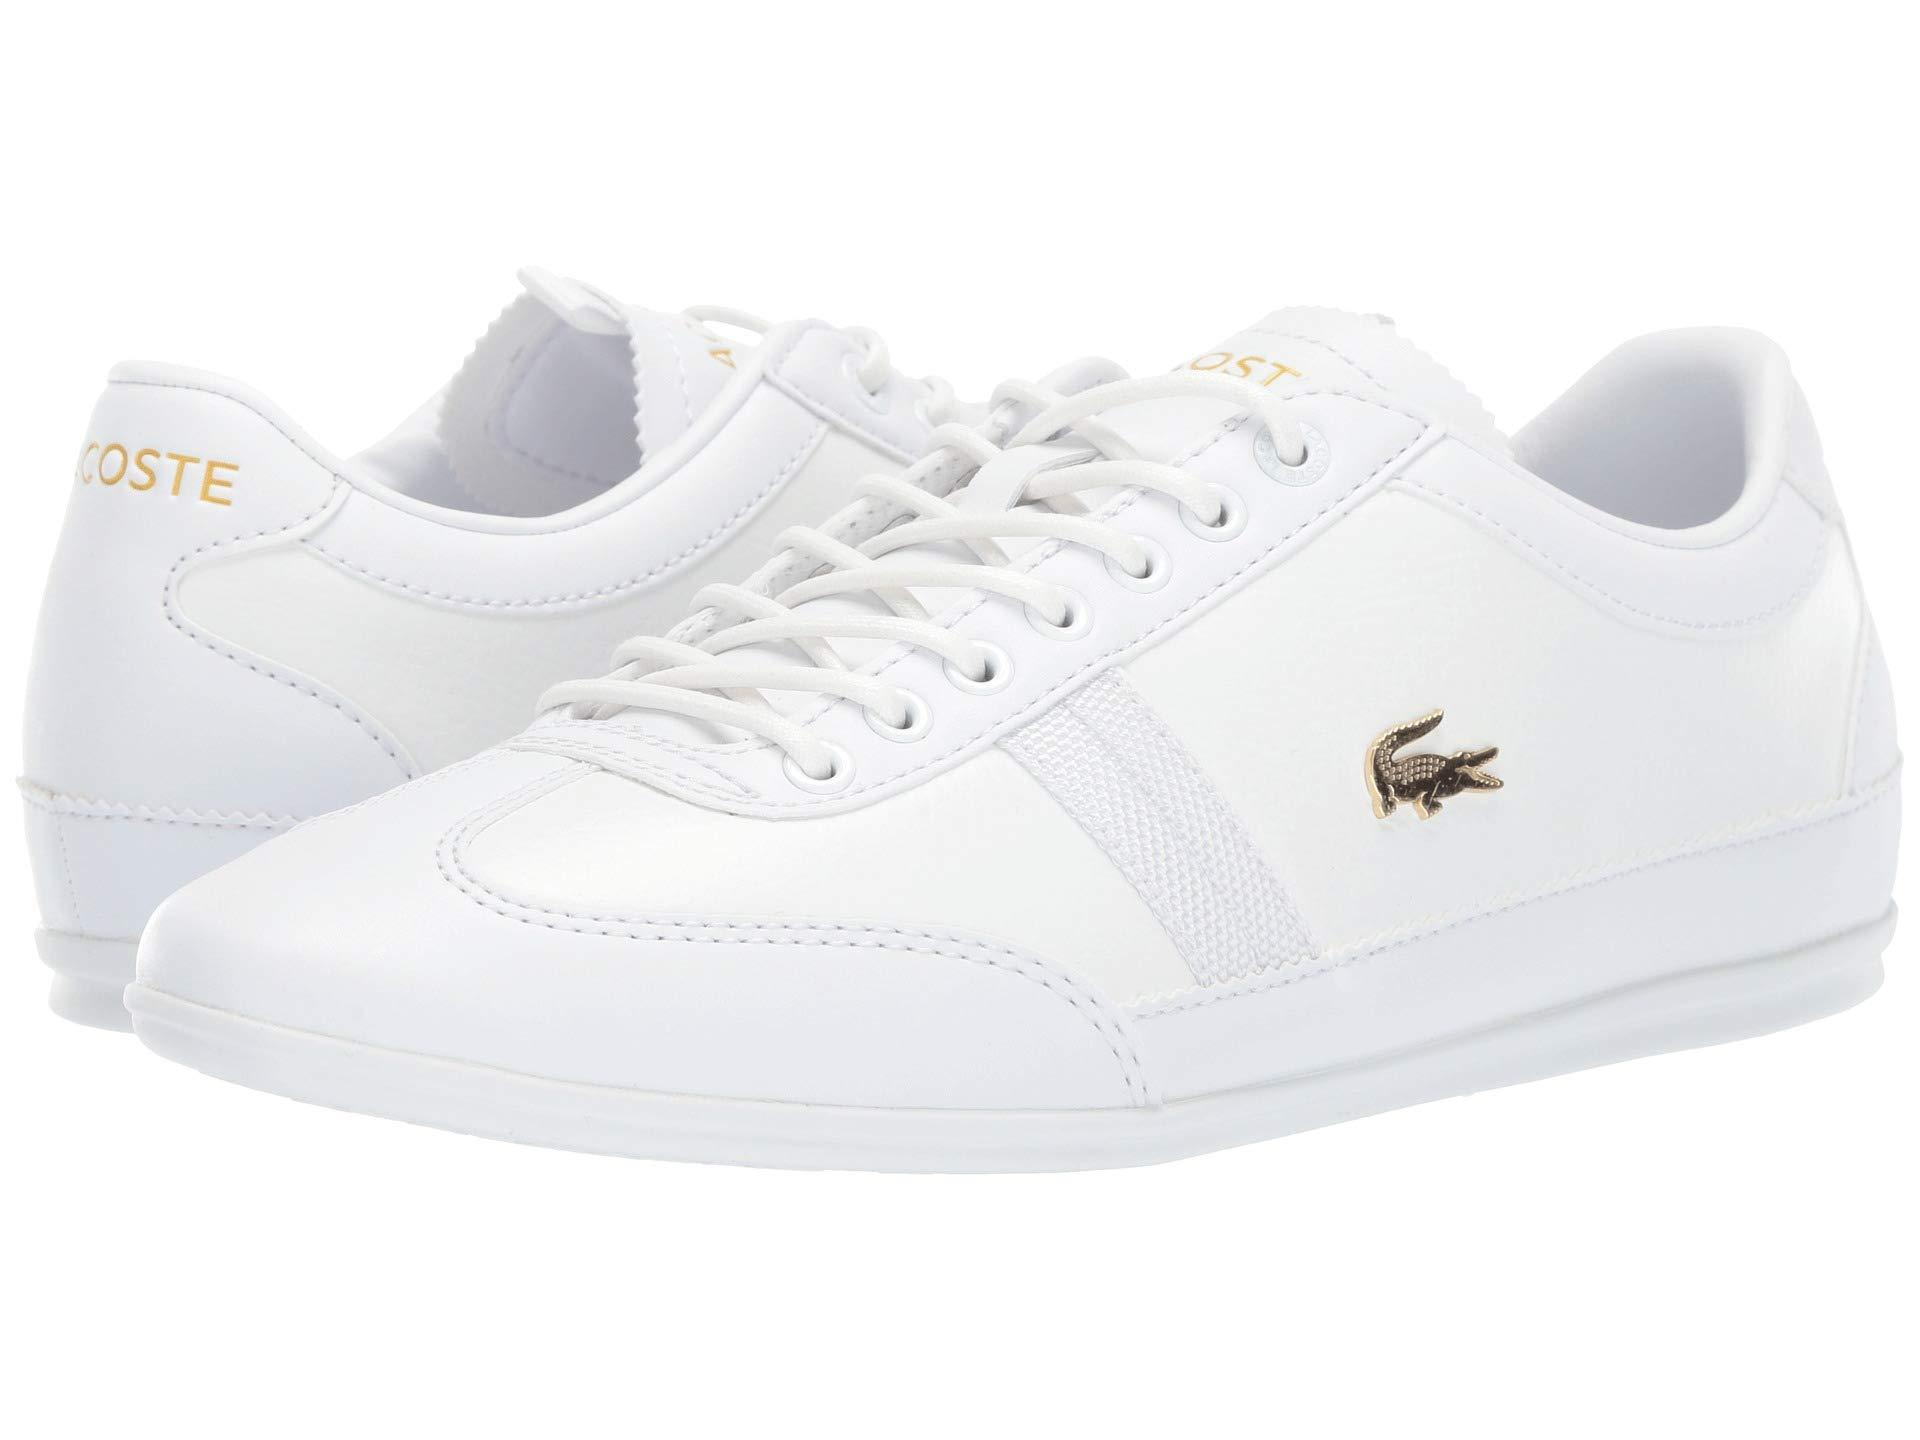 f7ee49066 Lyst - Lacoste Misano 119 1 U Cma (white white) Men s Shoes in White ...